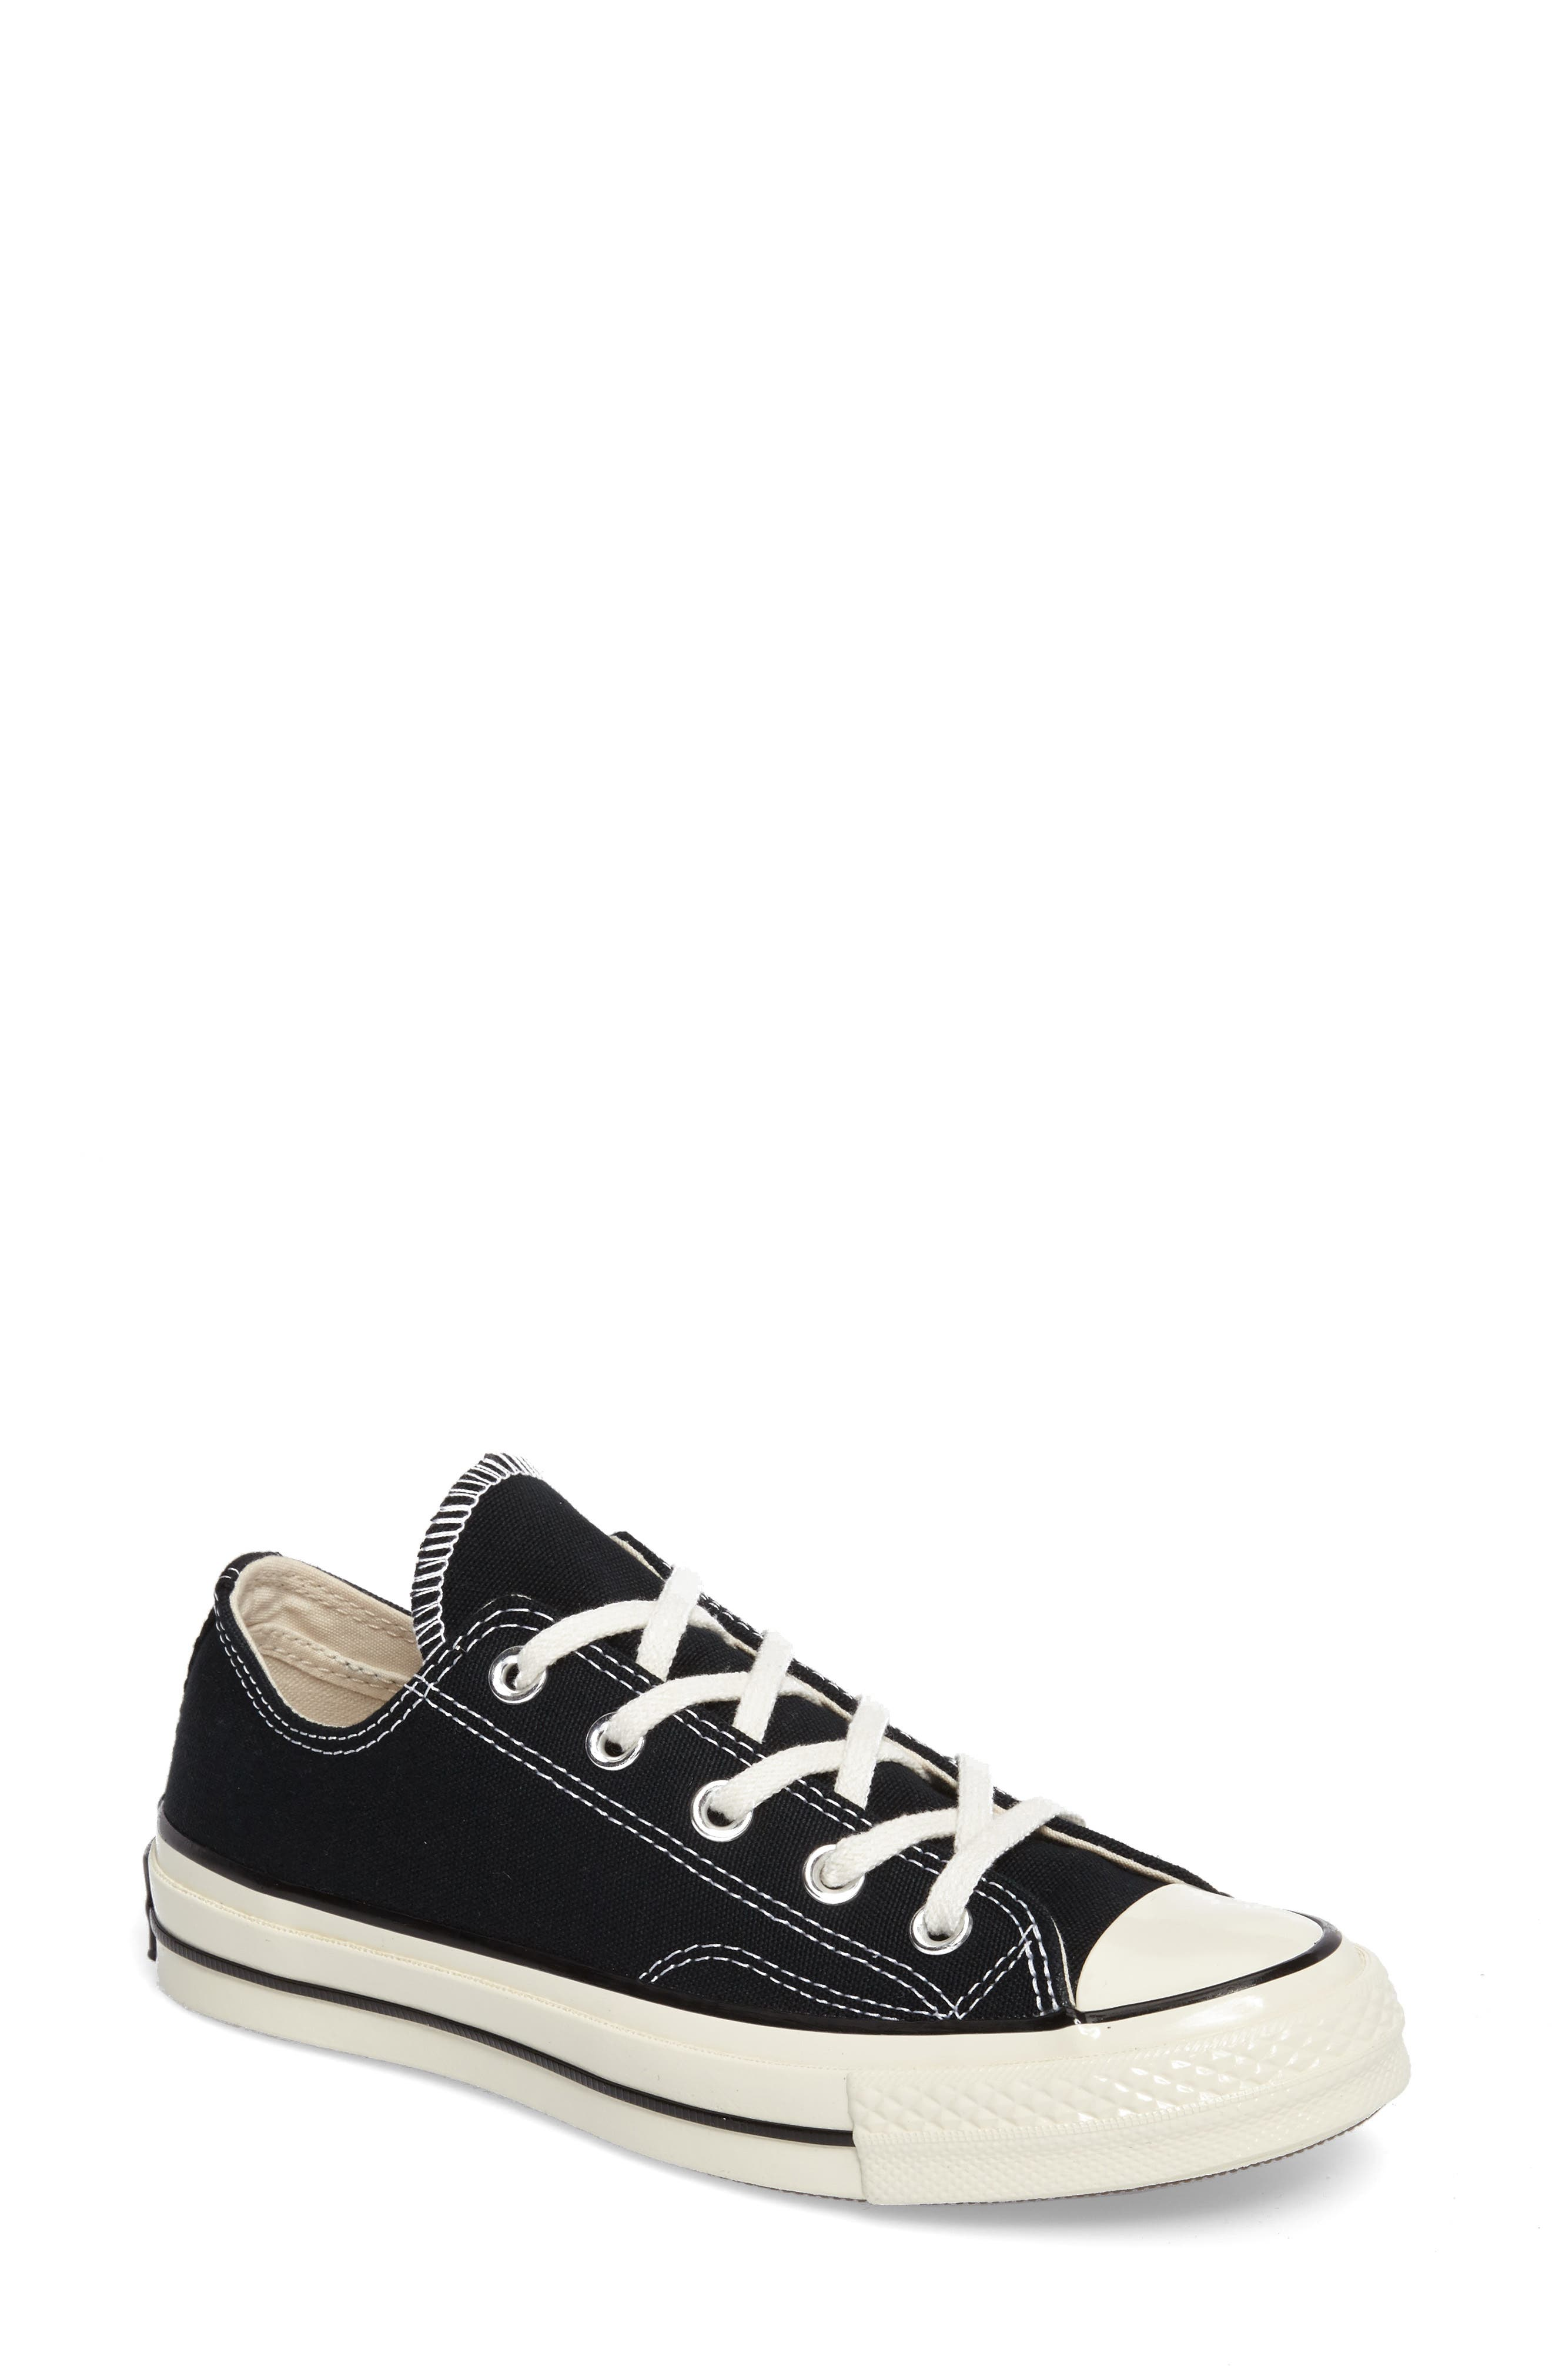 Chuck Taylor<sup>®</sup> All Star<sup>®</sup> Ox Low Top Sneaker,                         Main,                         color, Black